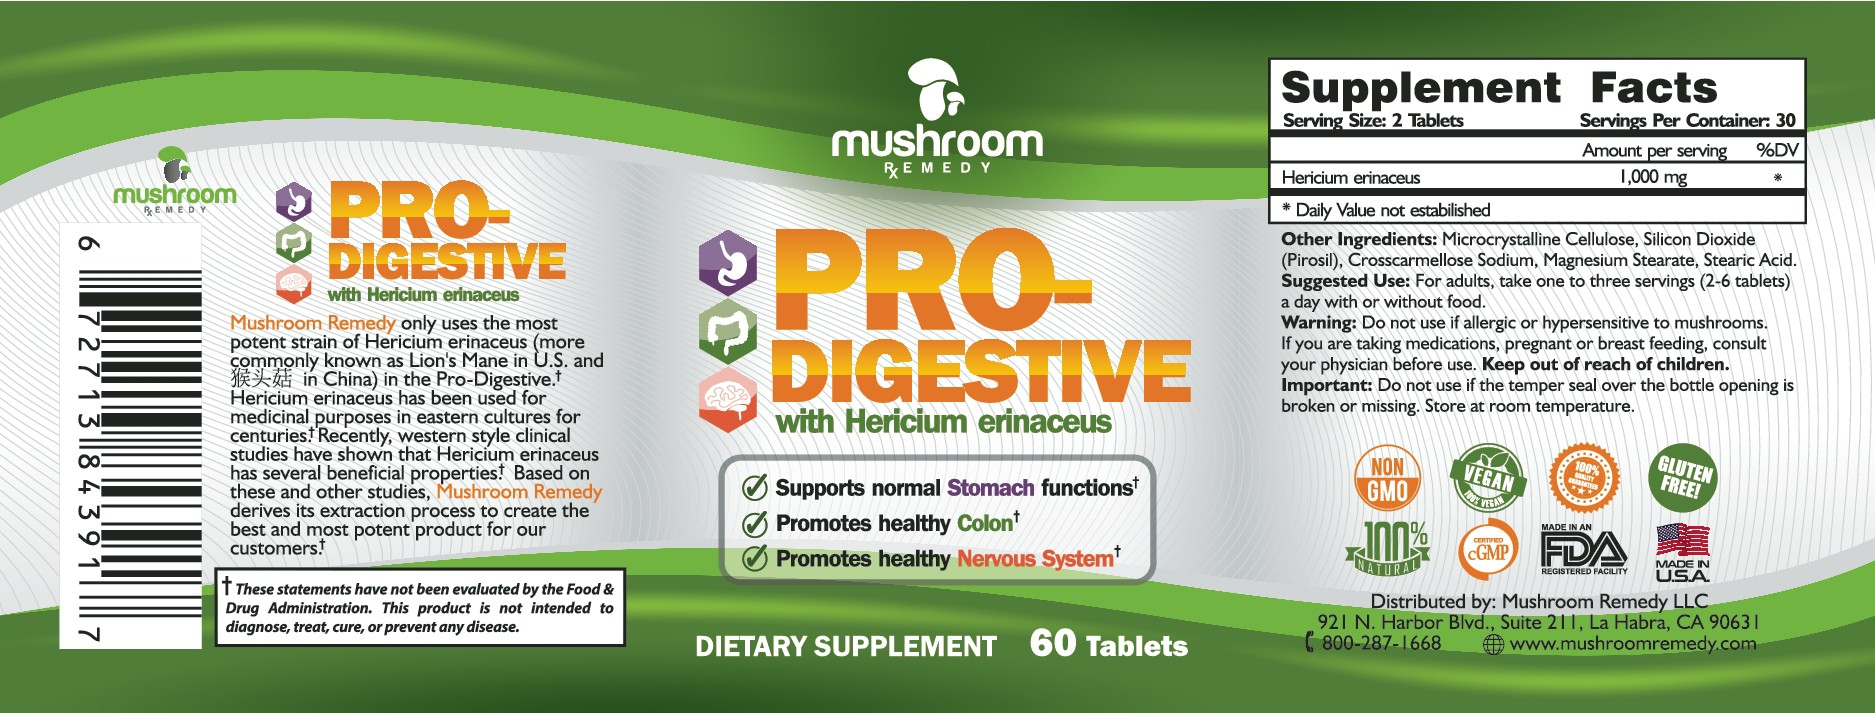 Create an eye catching and creative label for Mushroom Remedy